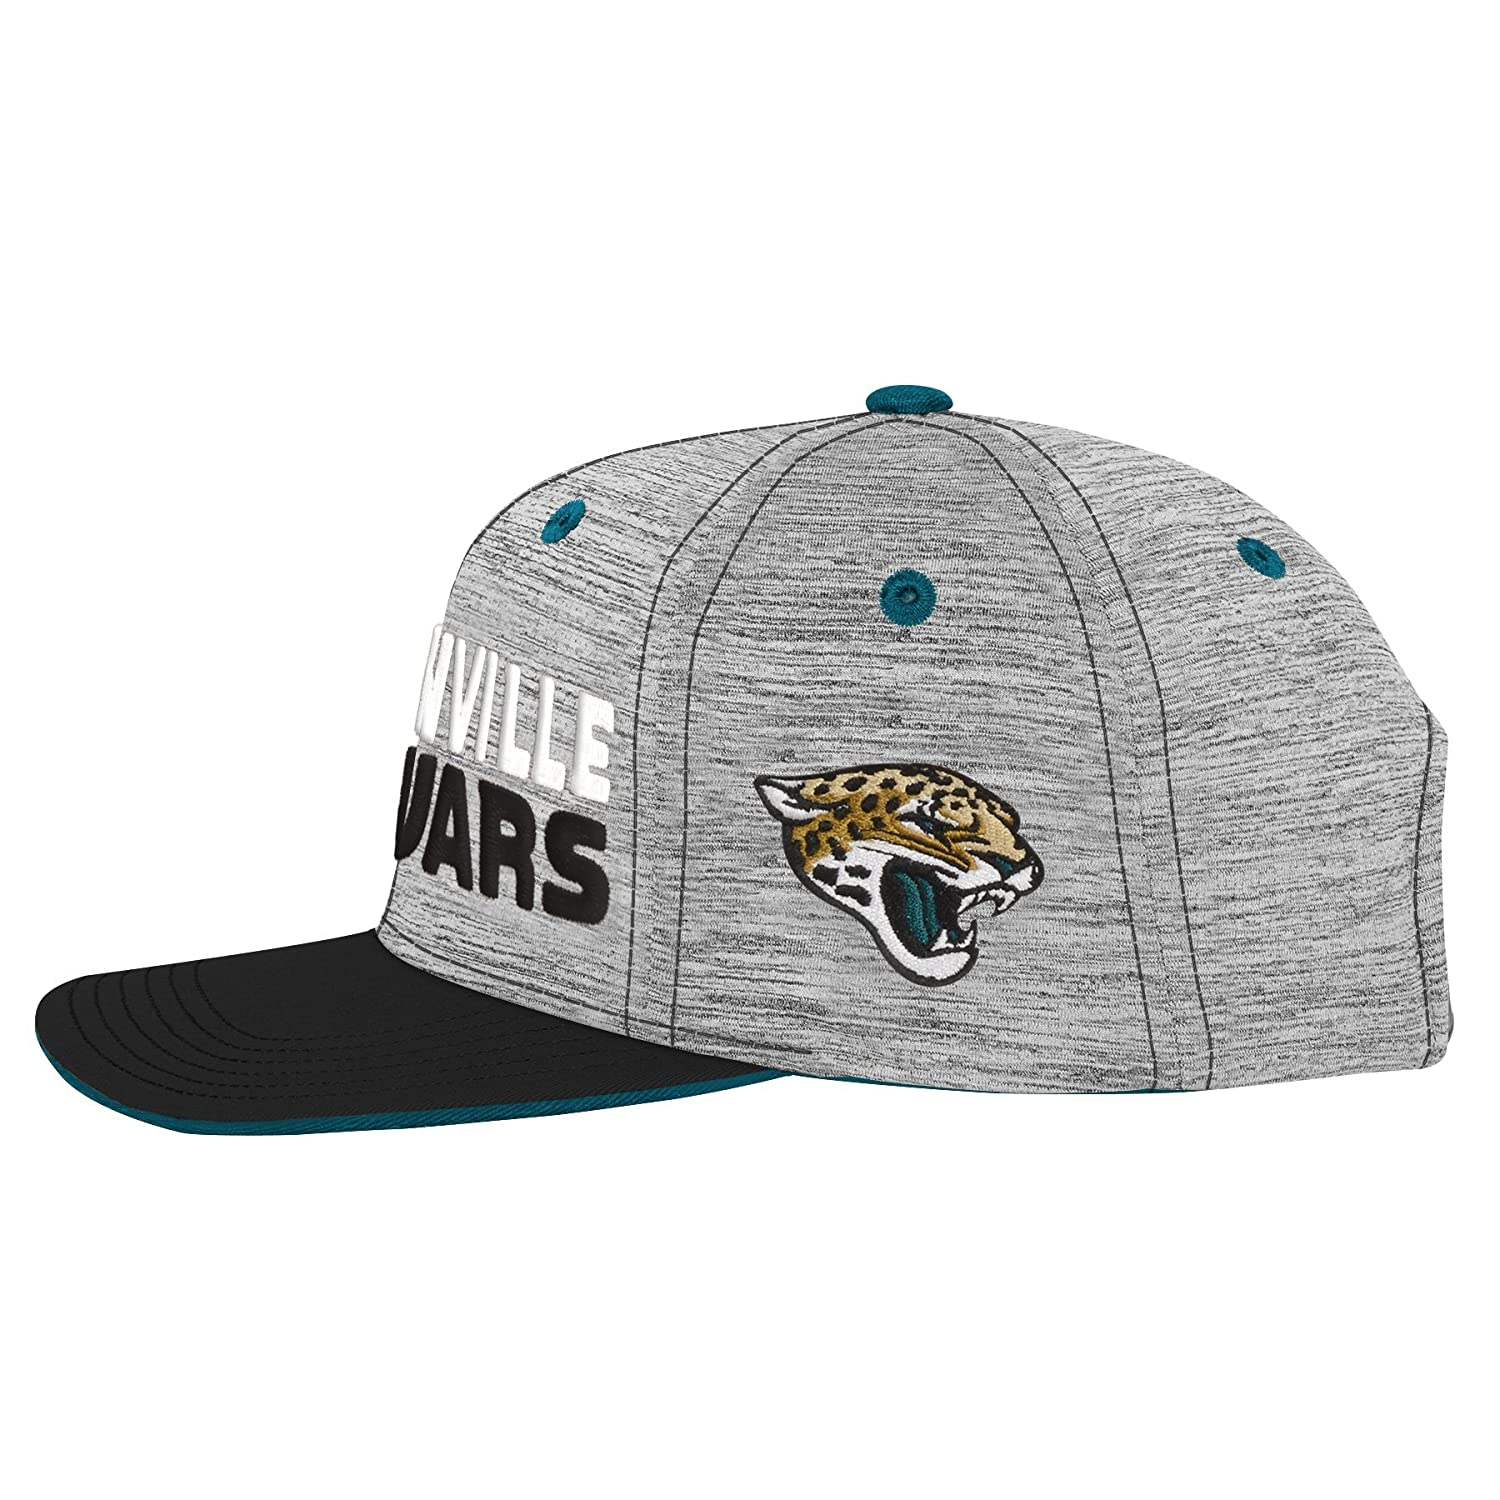 Looc Unisex Structured Adjustable Hat Jacksonville Jaguars Snapback Cap